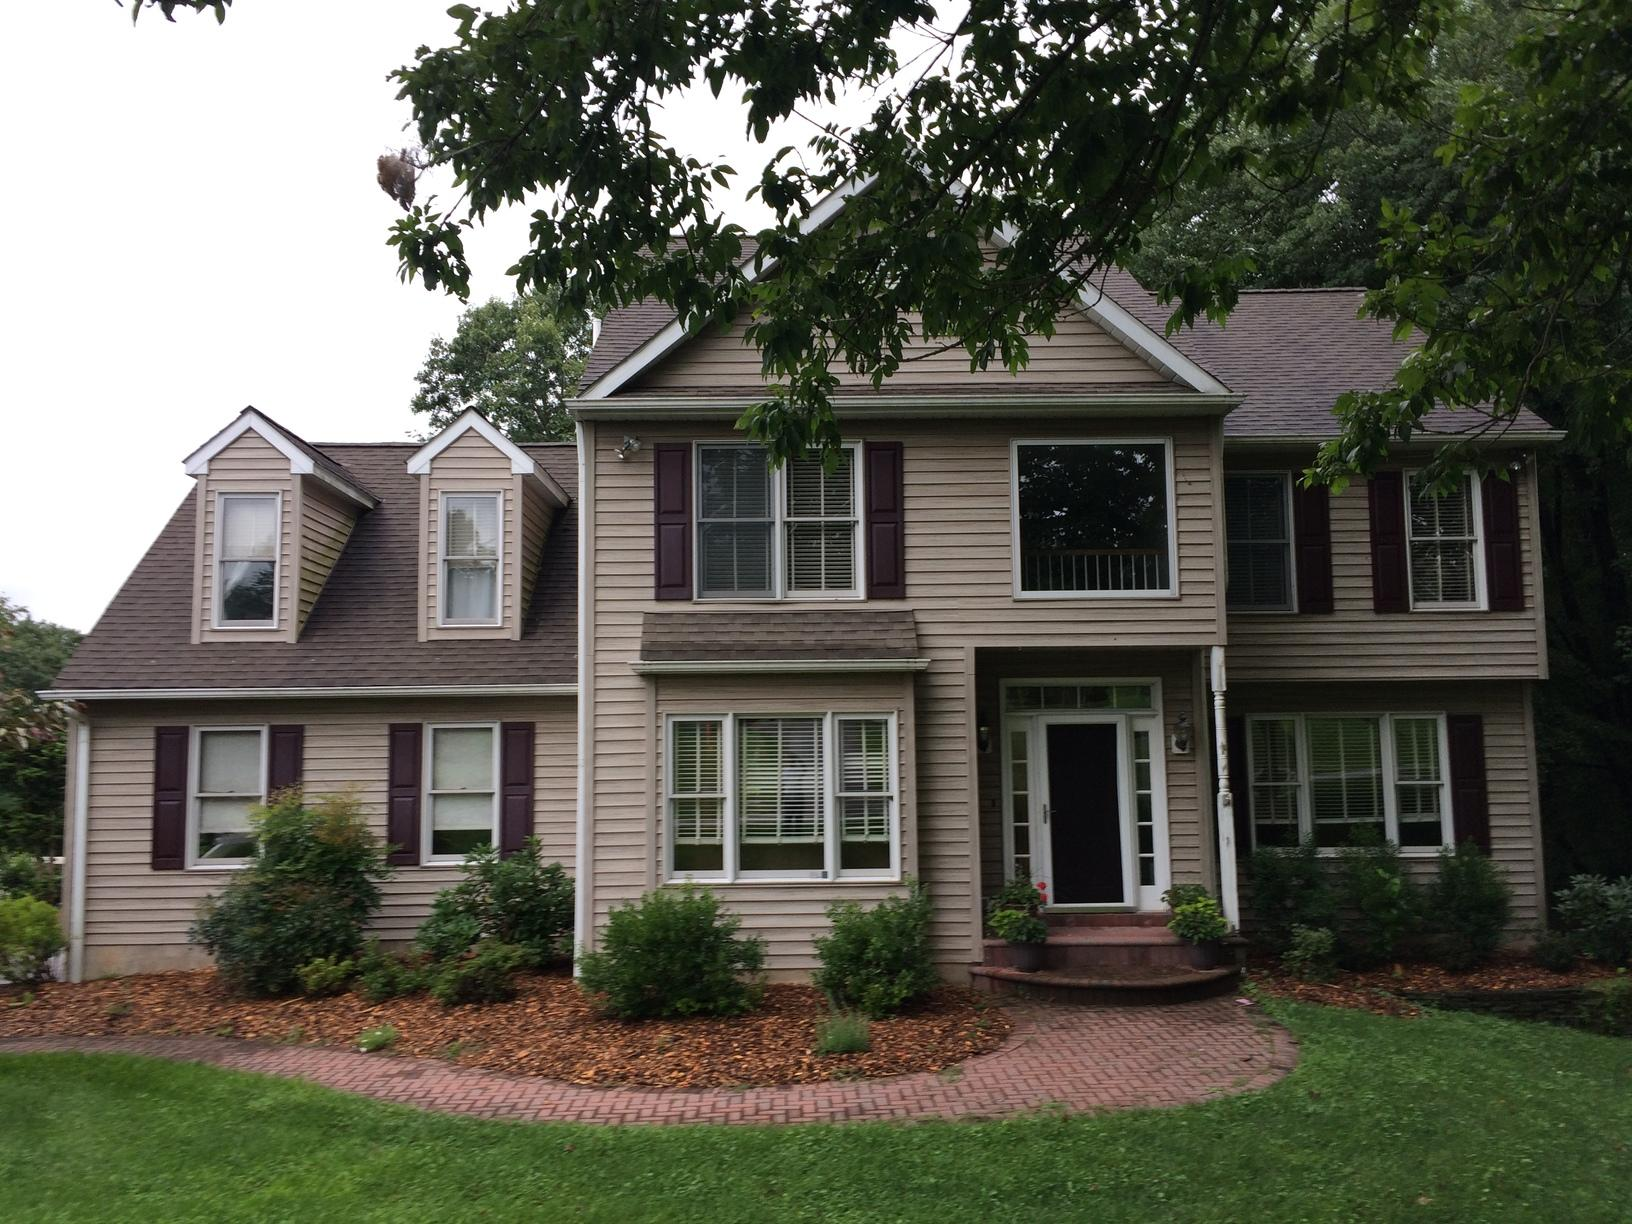 Arctic White James Hardie Batten Board Fiber Cement Siding Installation in Oxford, PA - Before Photo